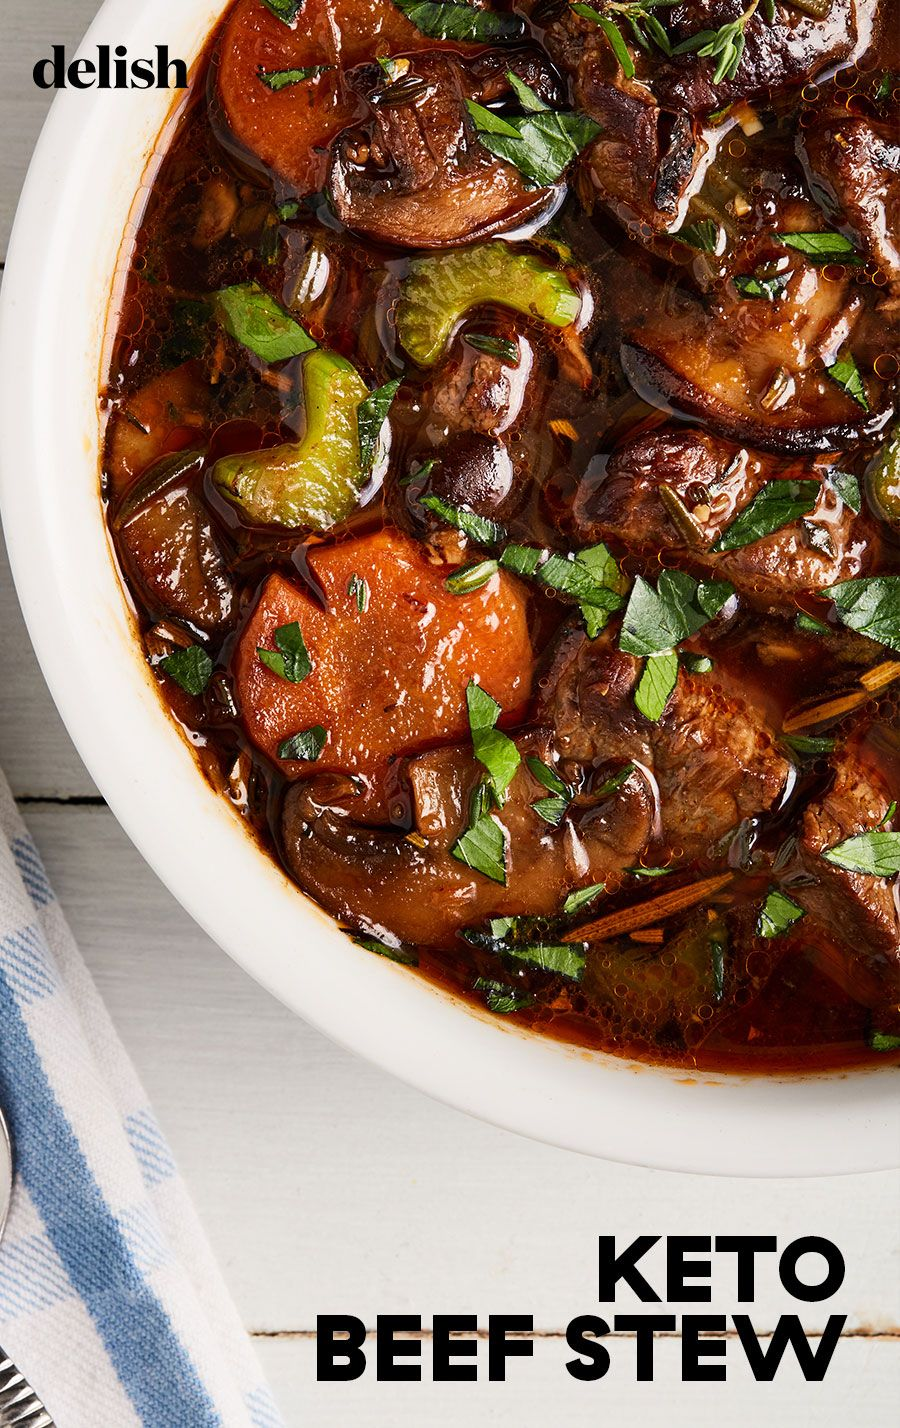 Keto Beef Stew Makes Staying On Track Easy Recipe Keto Beef Recipes Keto Beef Stew Keto Recipes Dinner